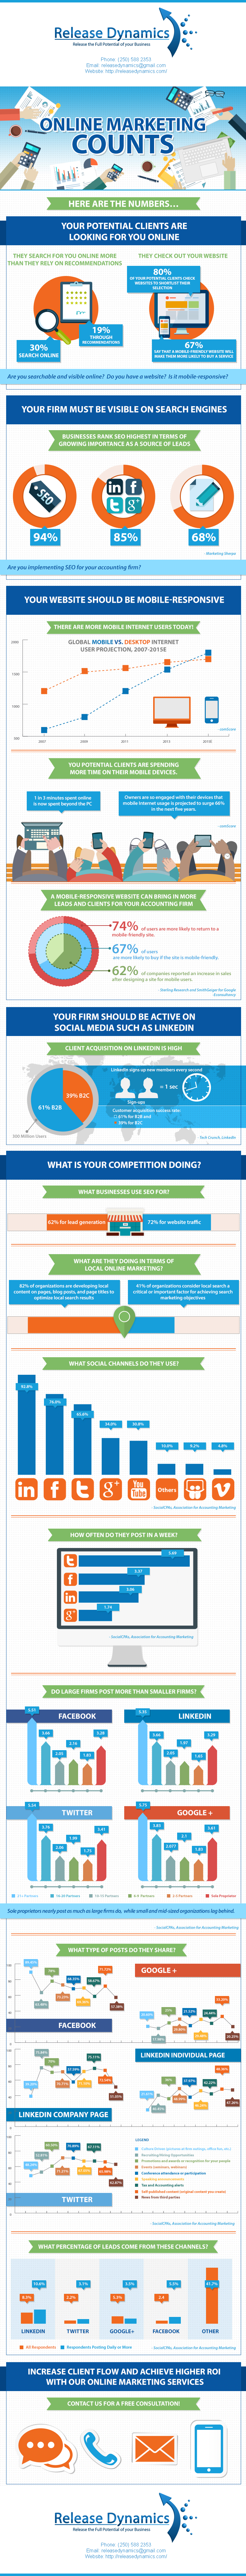 releasedynamics.com-Online-Marketing-for-Accountants-Infographic-US